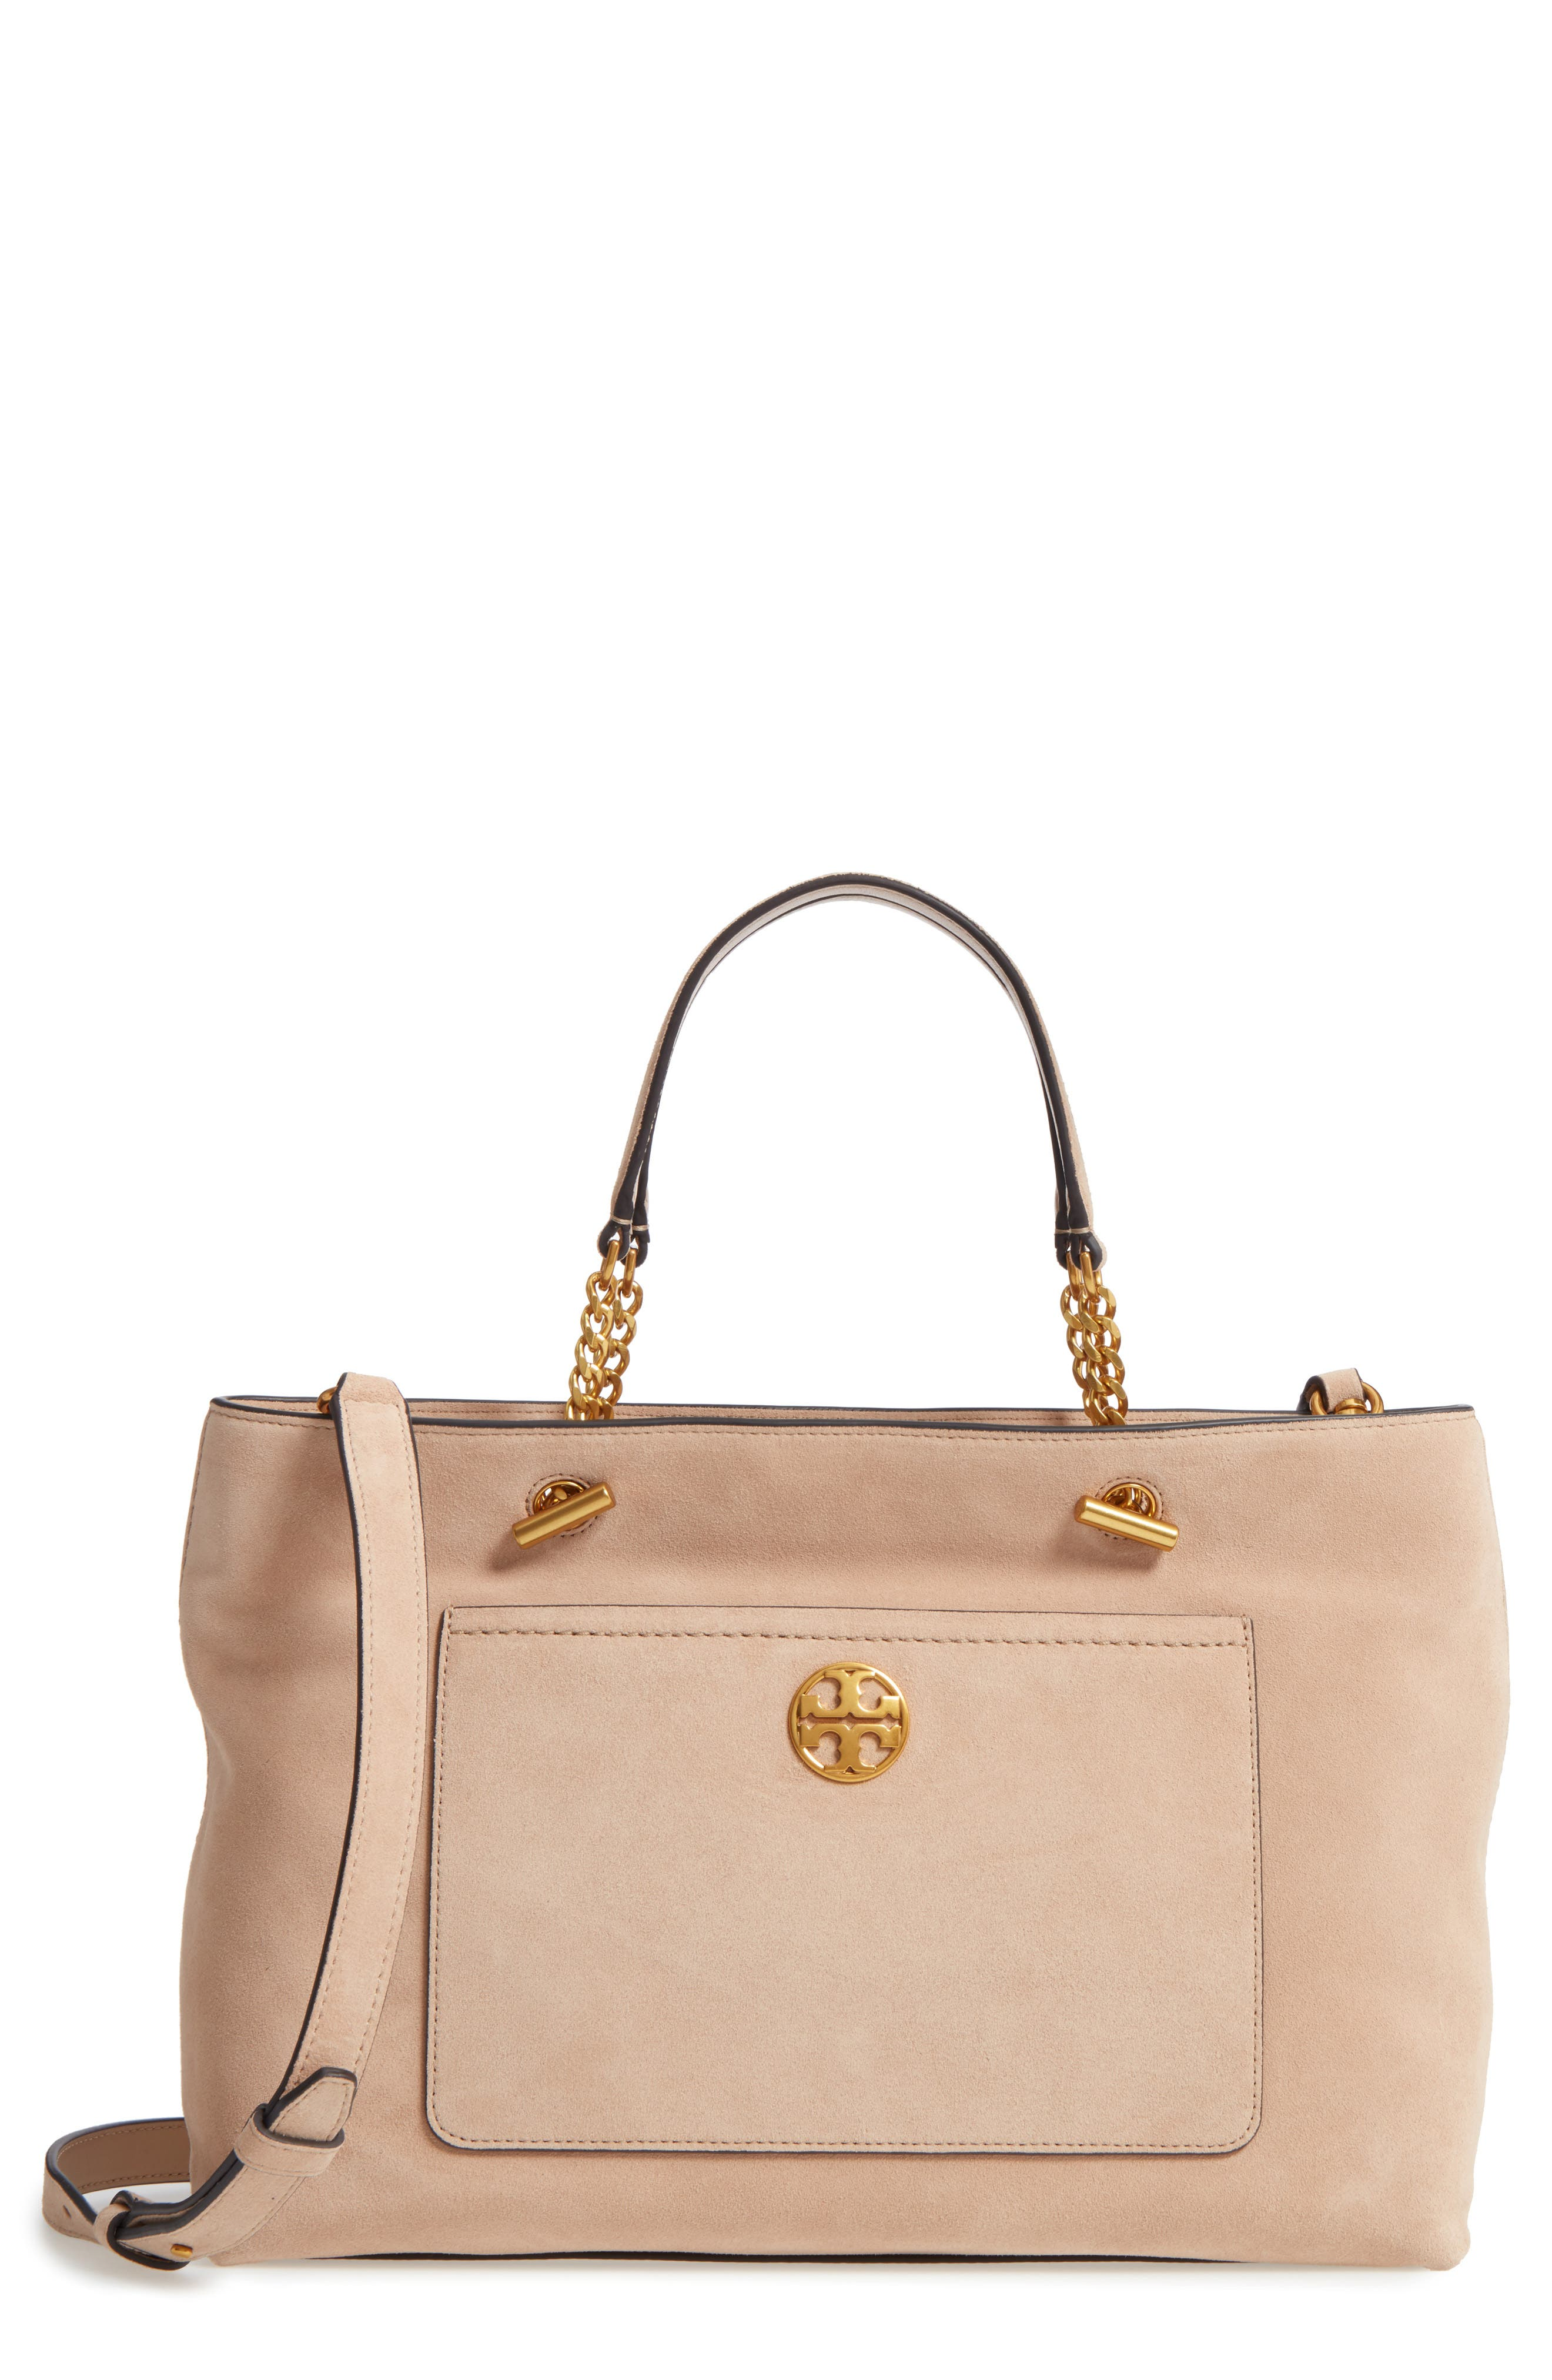 Main Image - Tory Burch Chelsea Suede Satchel